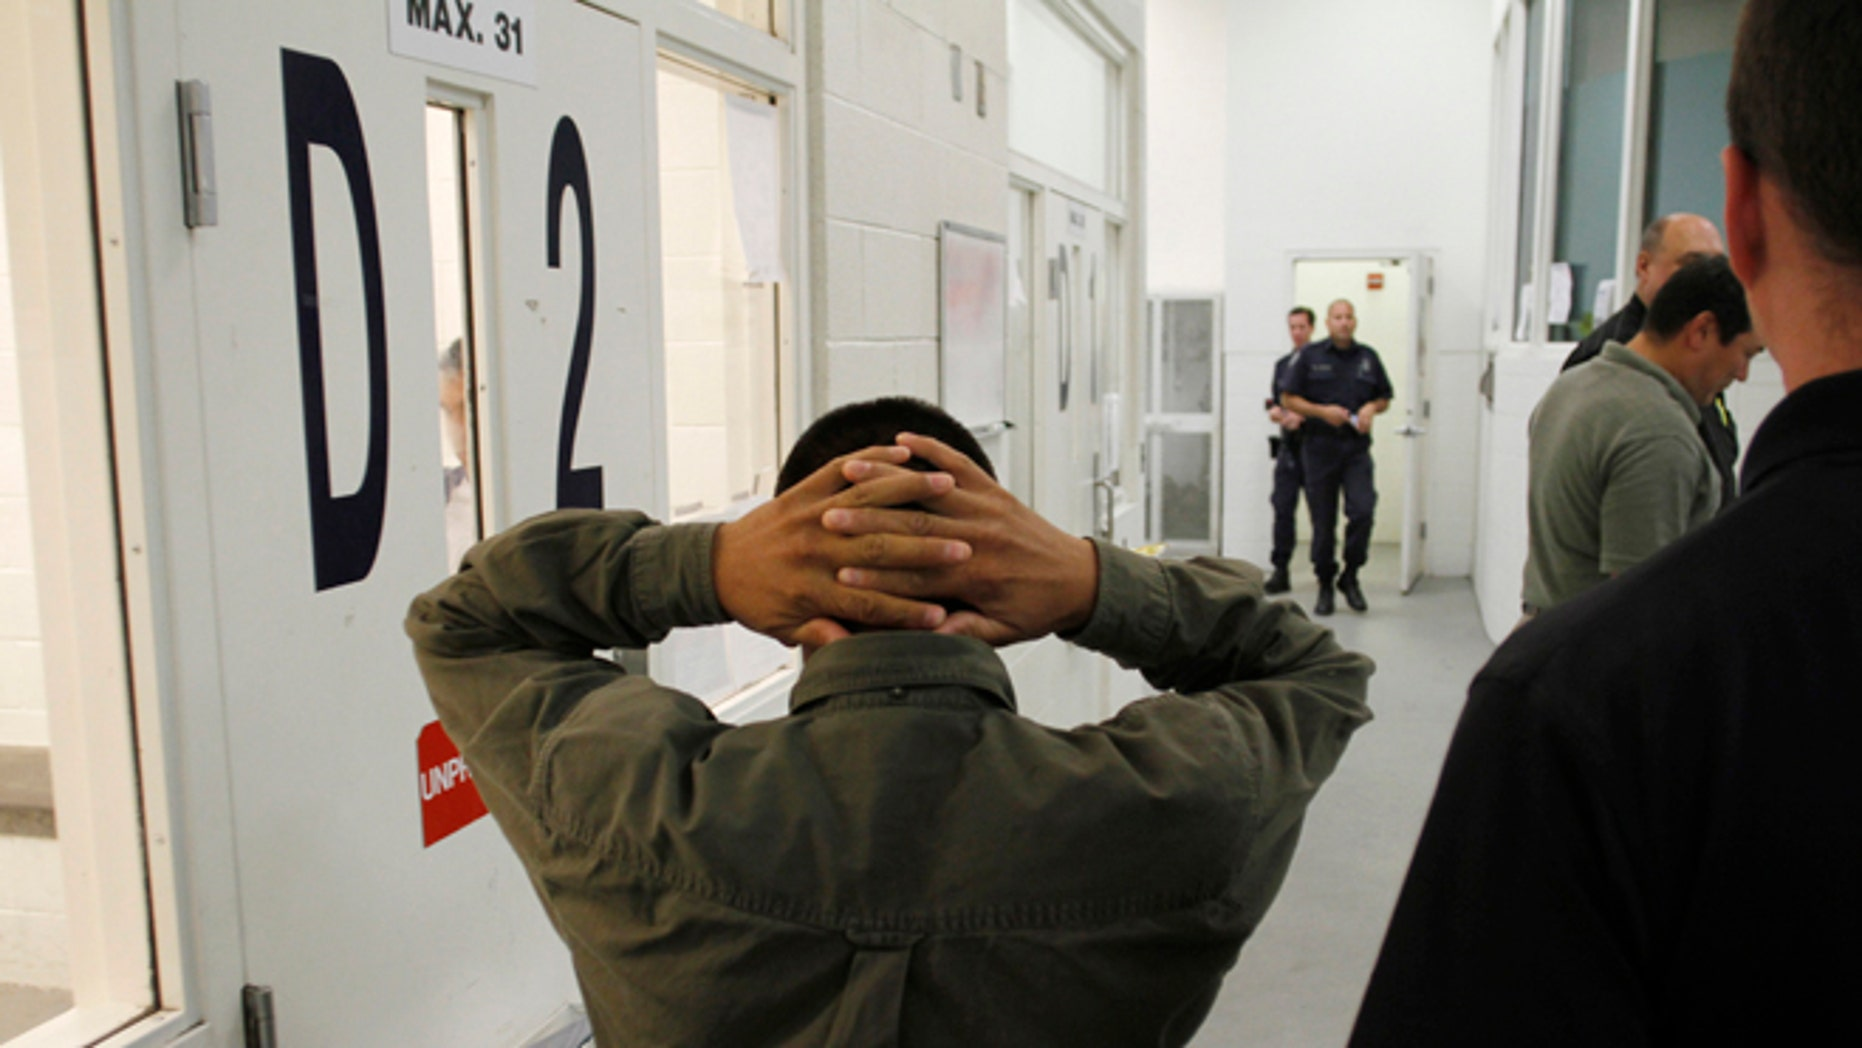 An undocumented immigrant is escorted at the Immigration and Customs Enforcement holding facility.